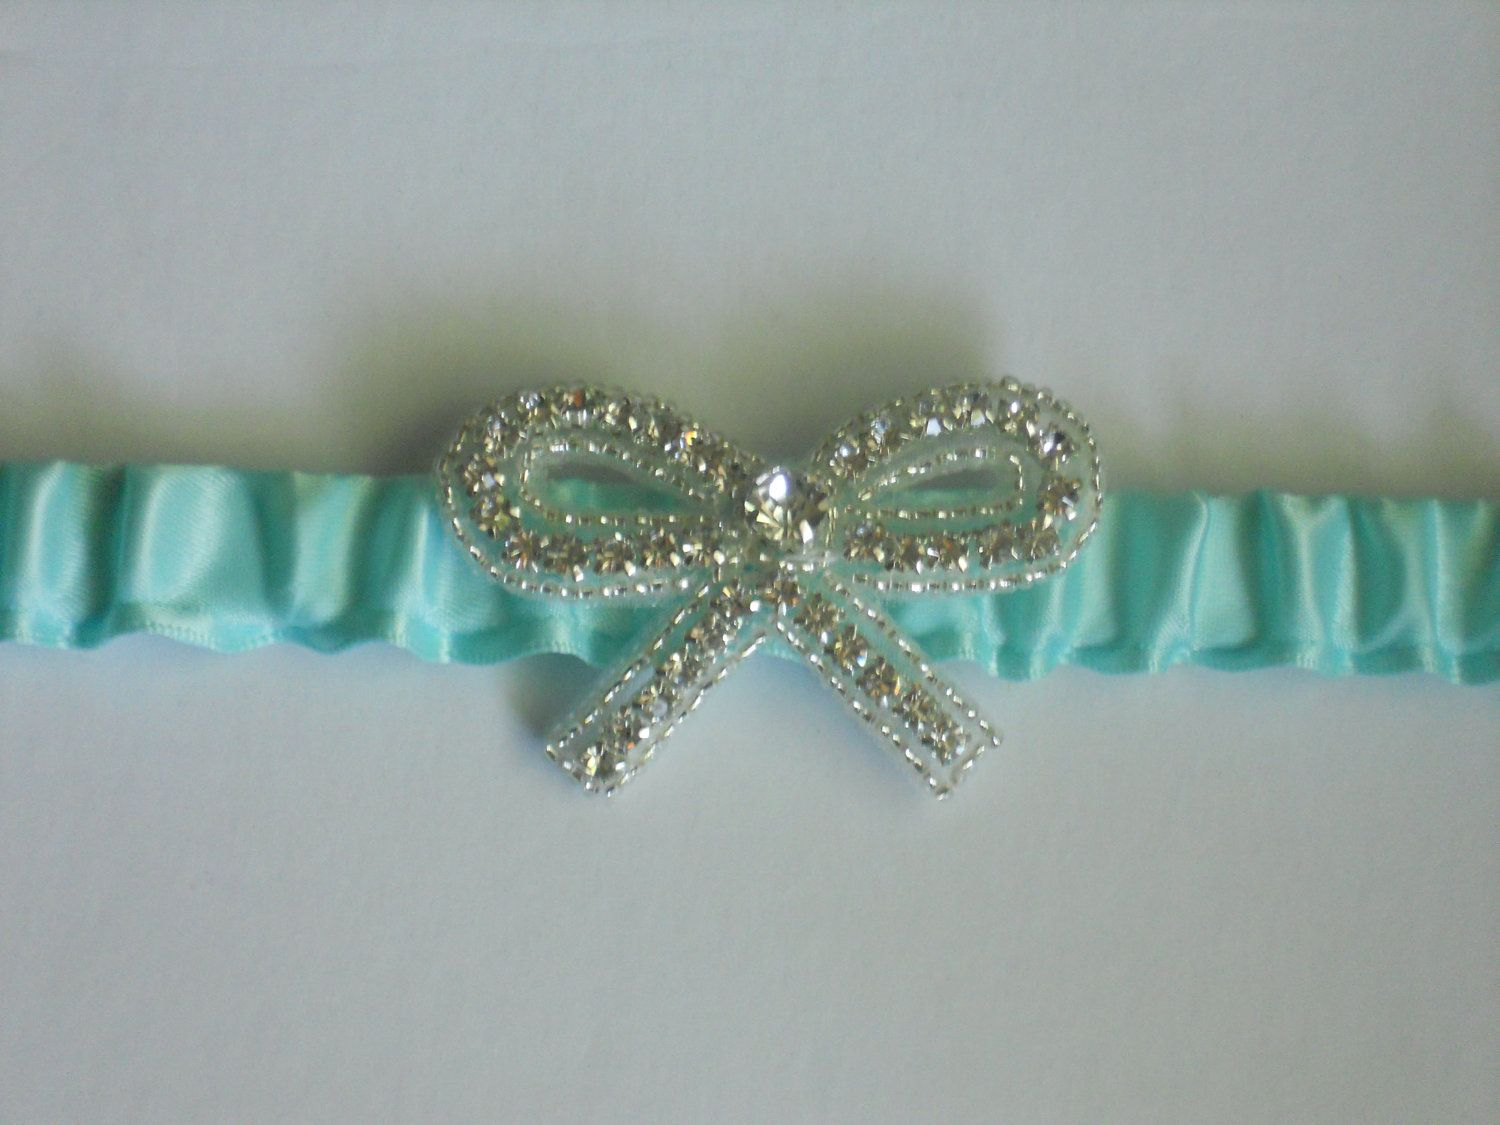 perfect duo: tiffany's blue and a bow